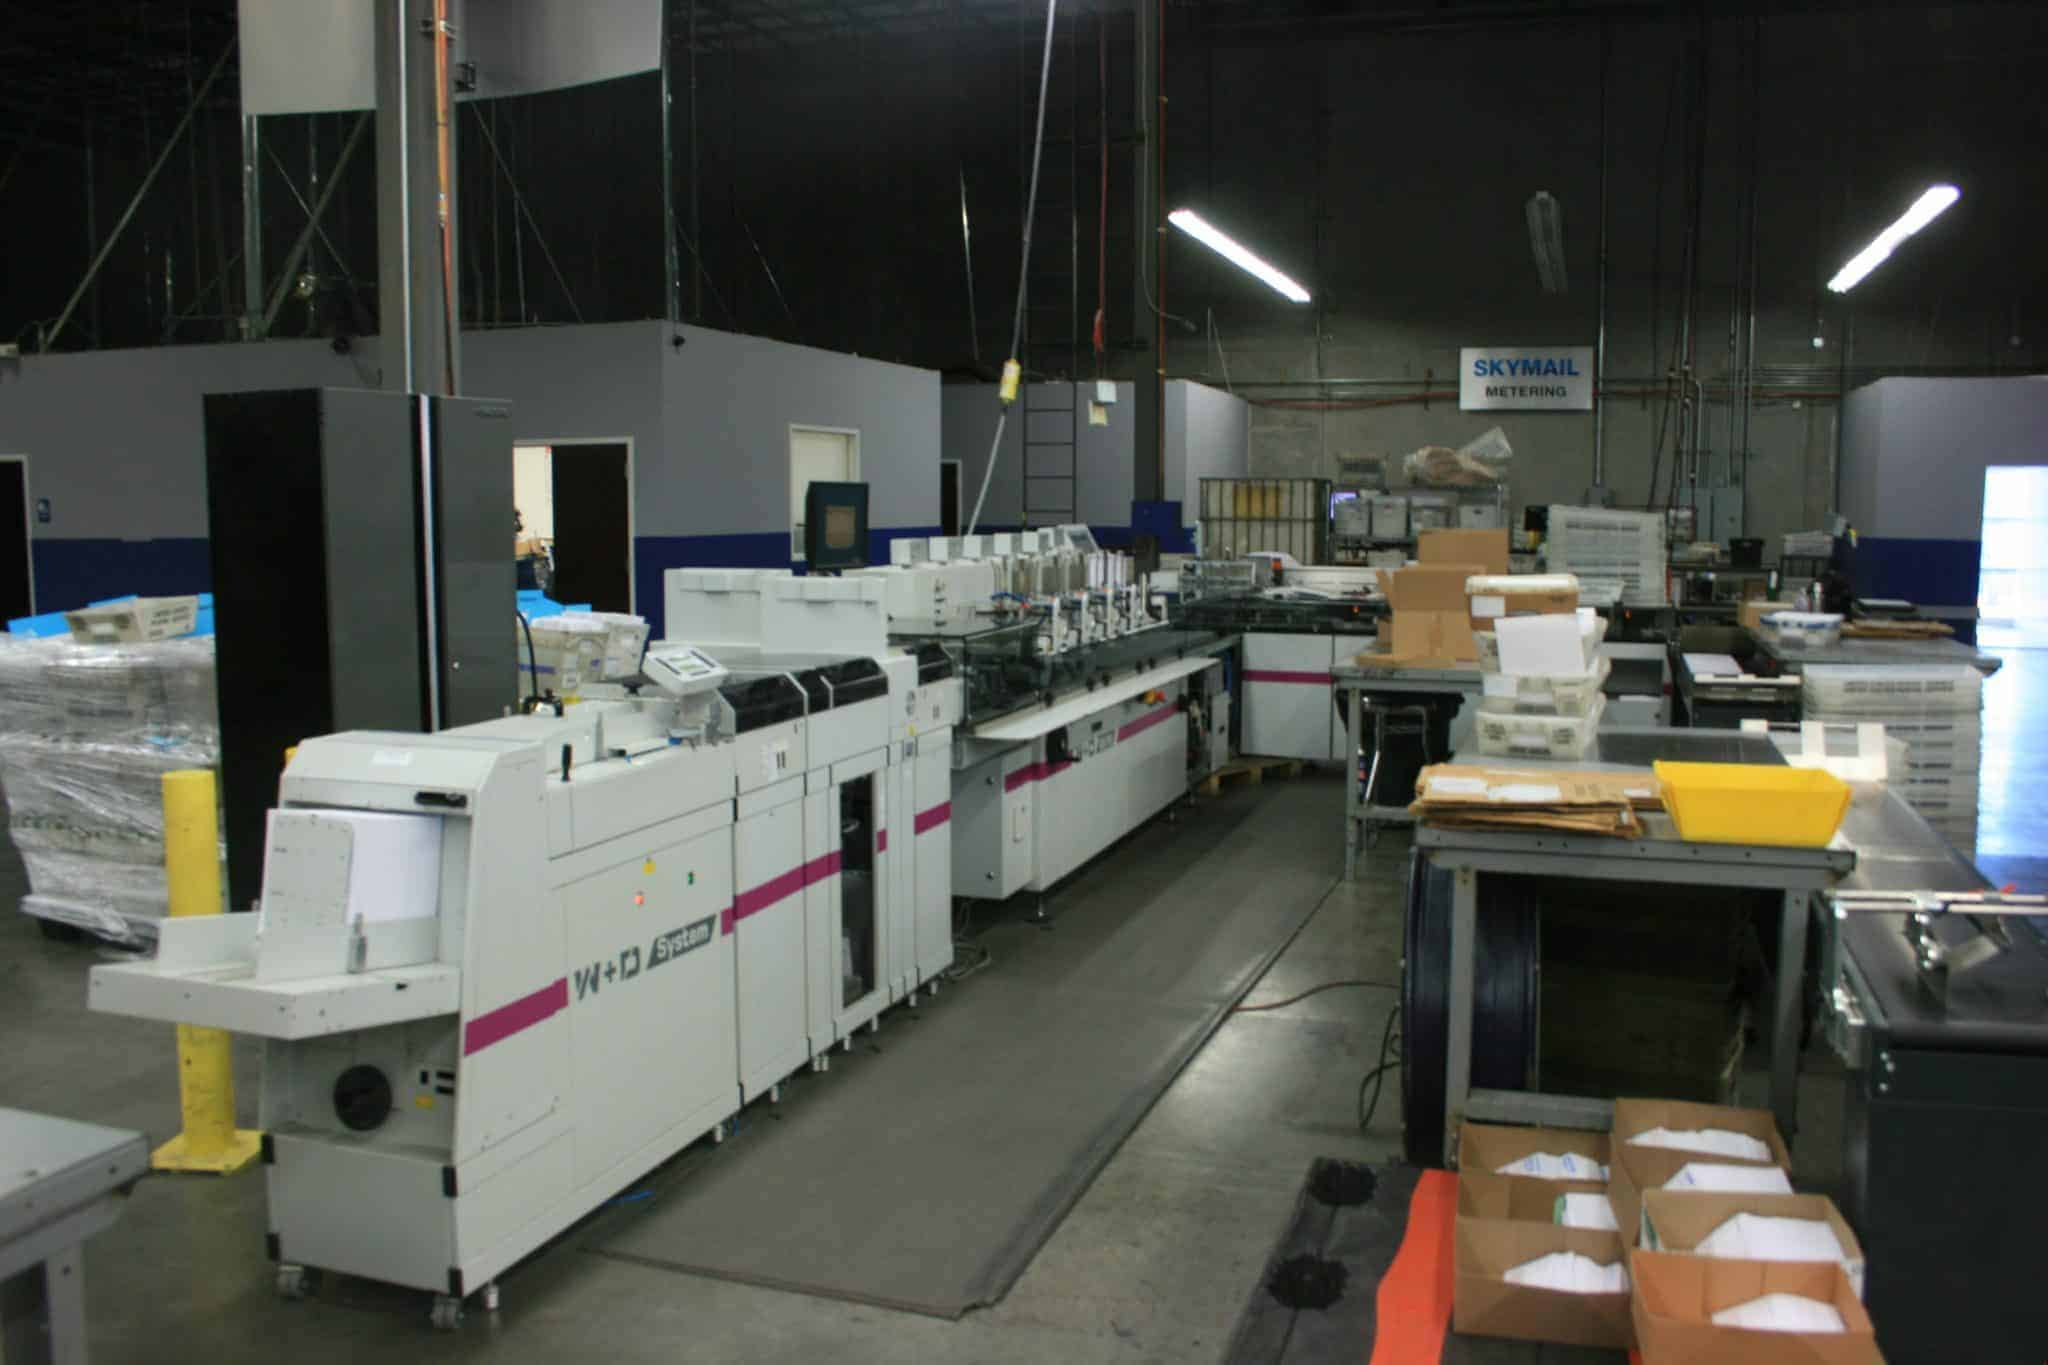 Picture of W+D BB700 envelope inserting system that Skymail International uses.